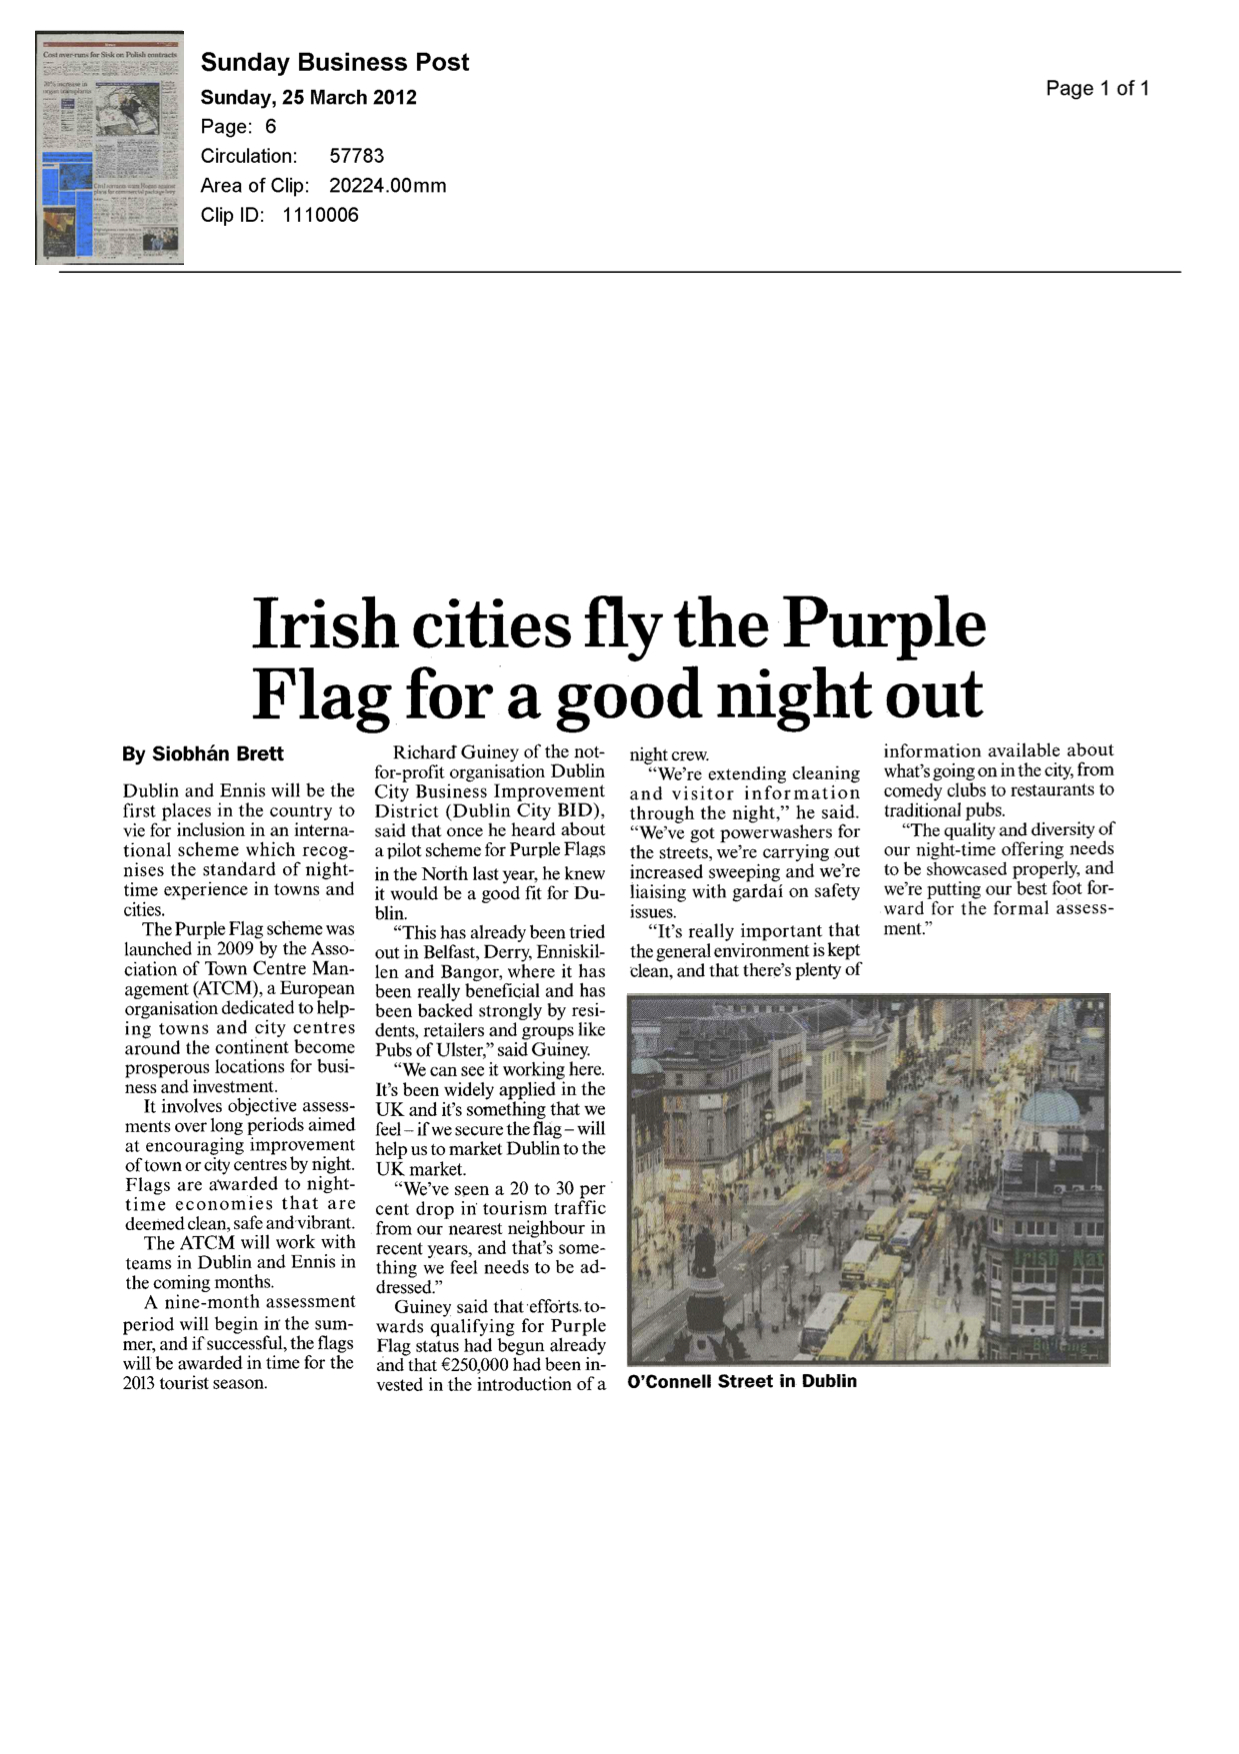 Irish-cities-fly-the-Purple-Flag-for-a-good-night-out-Sunday-Business-Post.jpeg